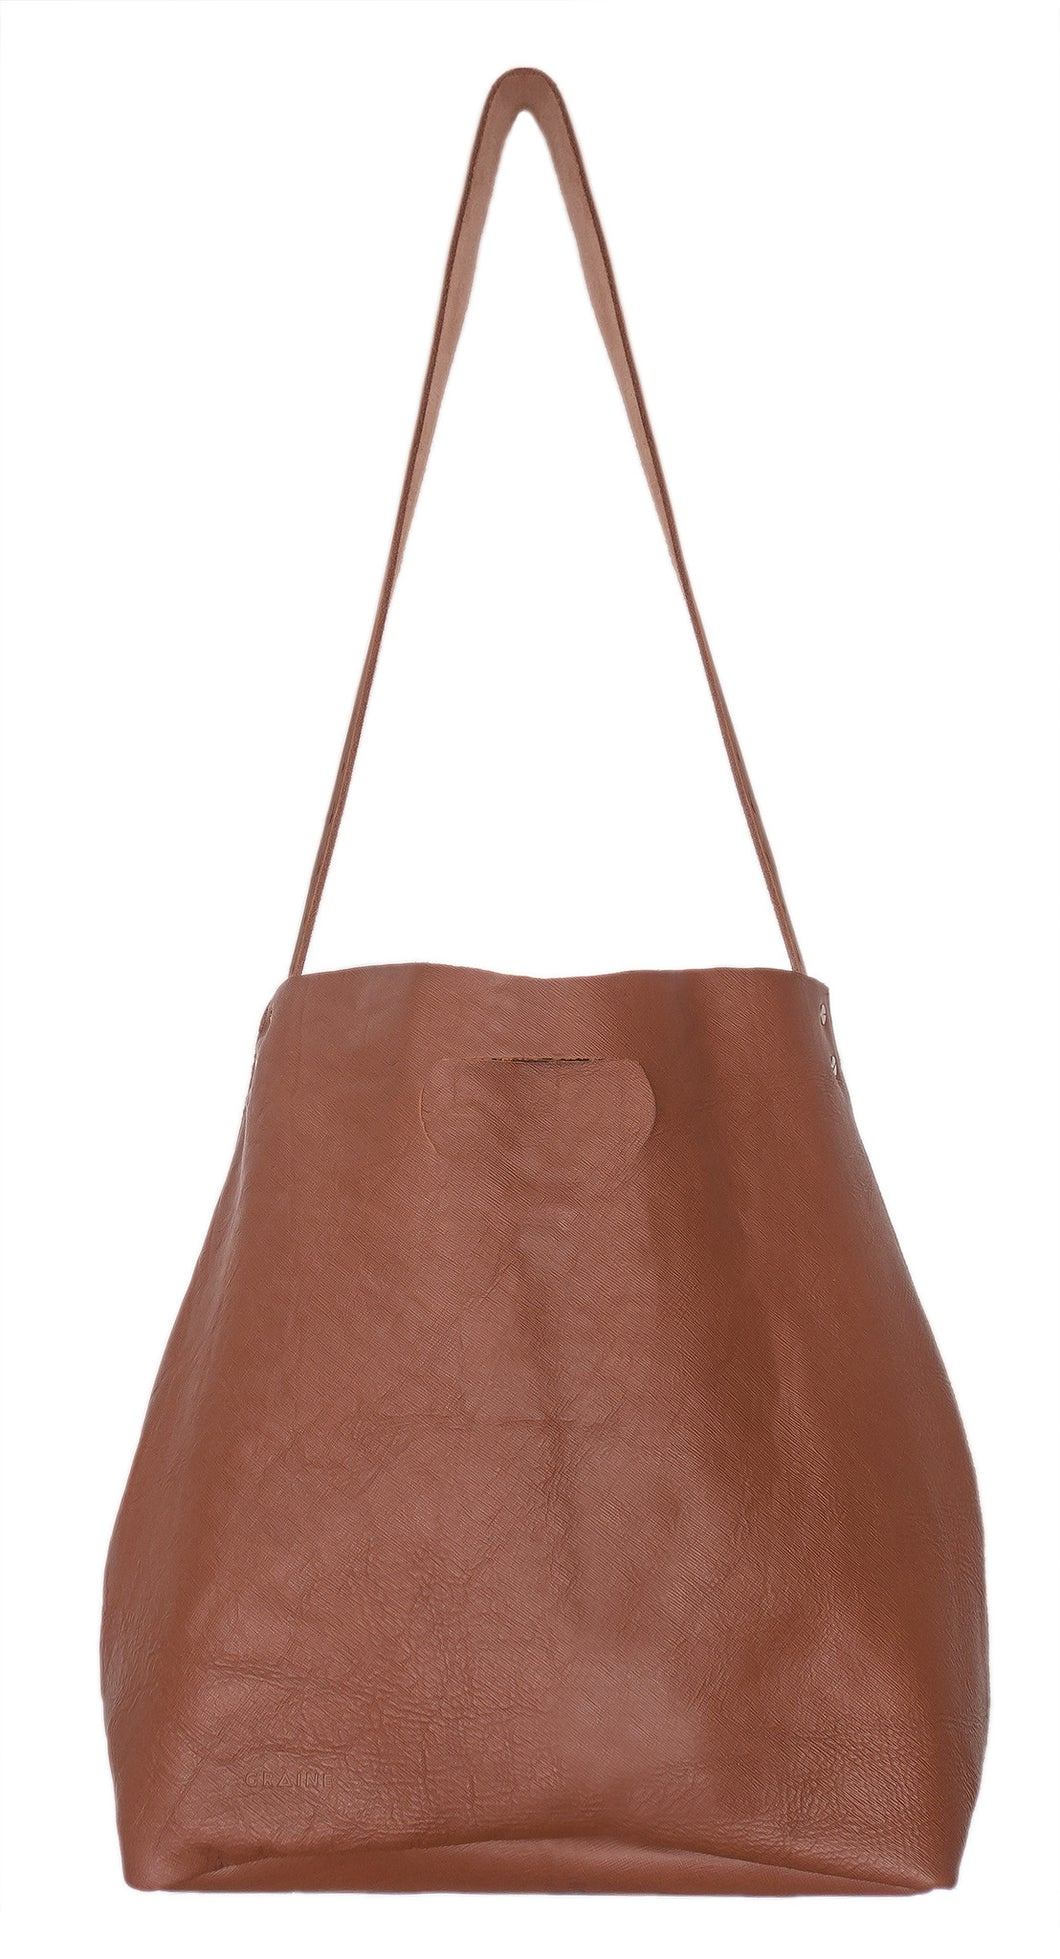 LYGON LUXE BAG IN TAN